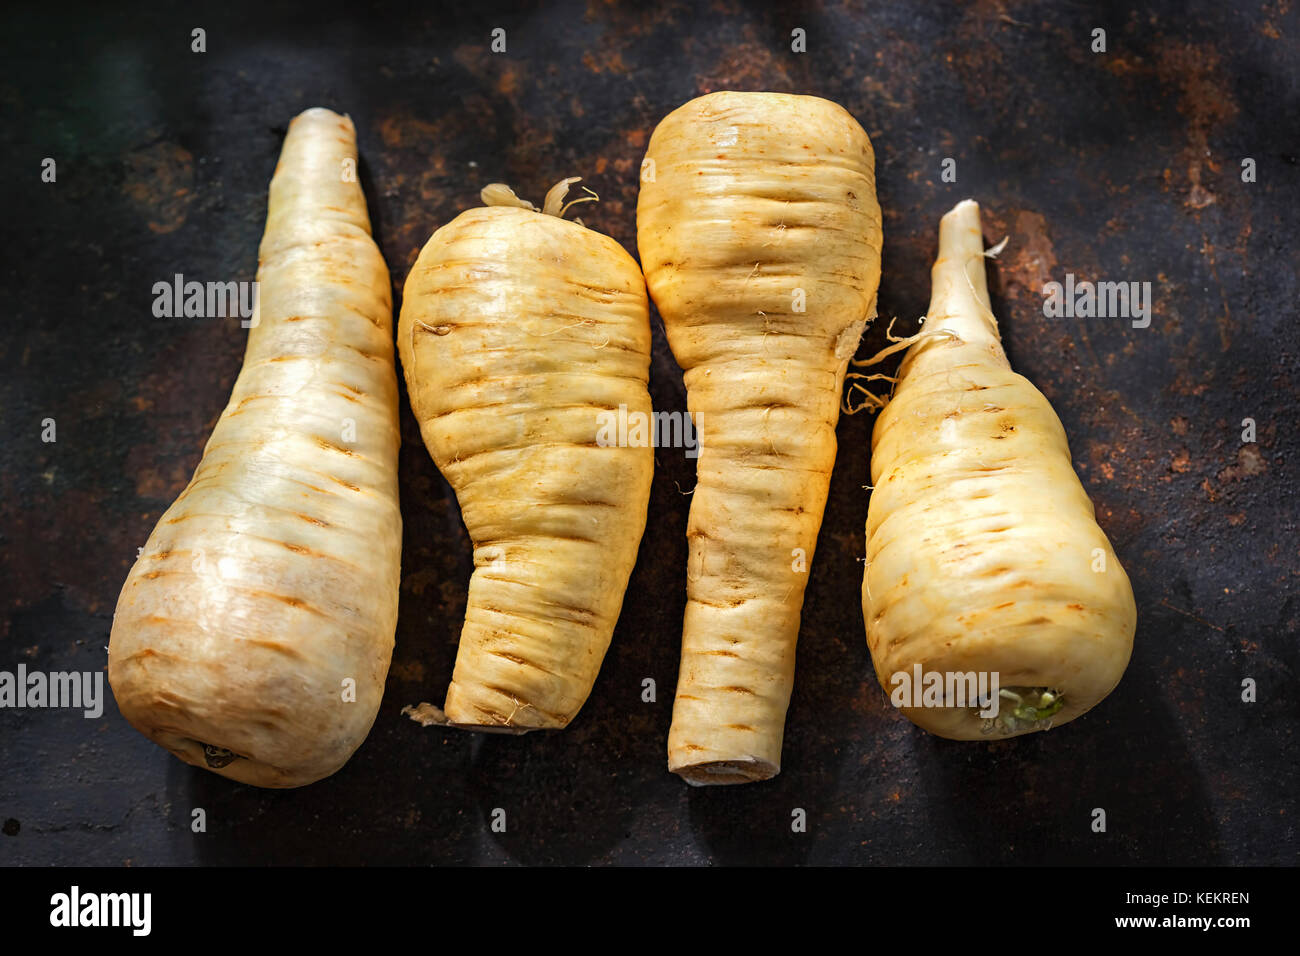 Raw parsnip roots on black surface - Stock Image